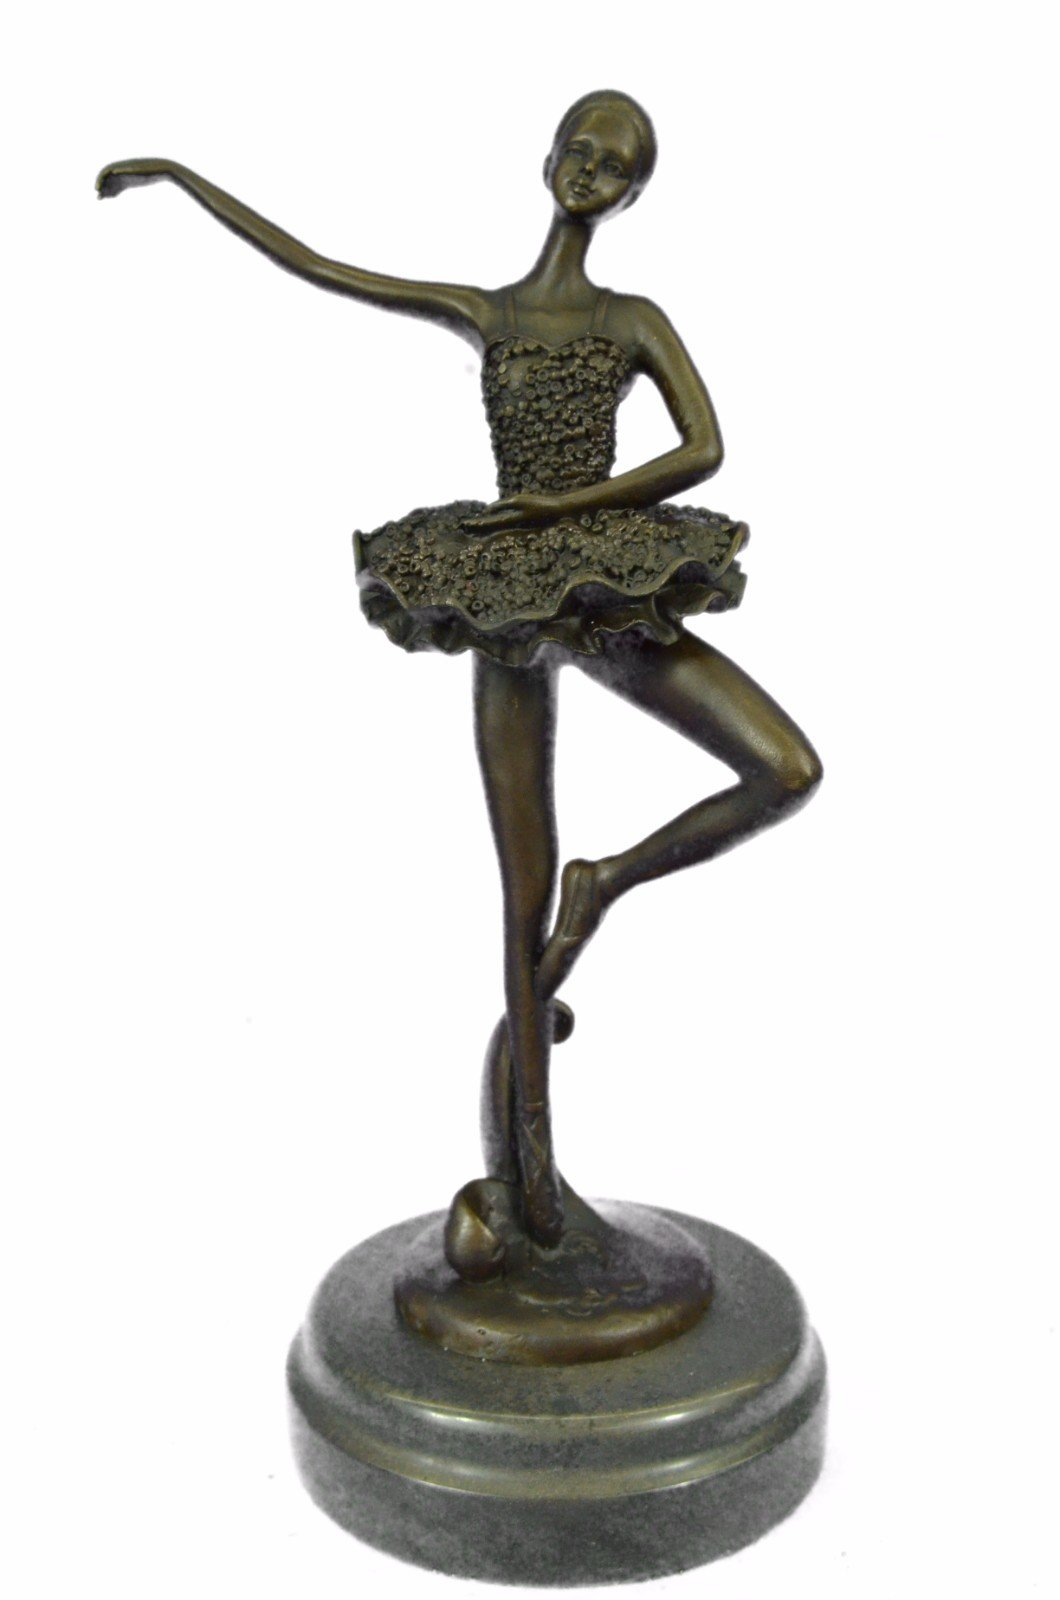 Handmade European Bronze Sculpture Art Deco Cute Child Ballerina a Trophy Hot Cast Figurine Bronze Statue -1X-YRD-1302-Decor Collectible Gift